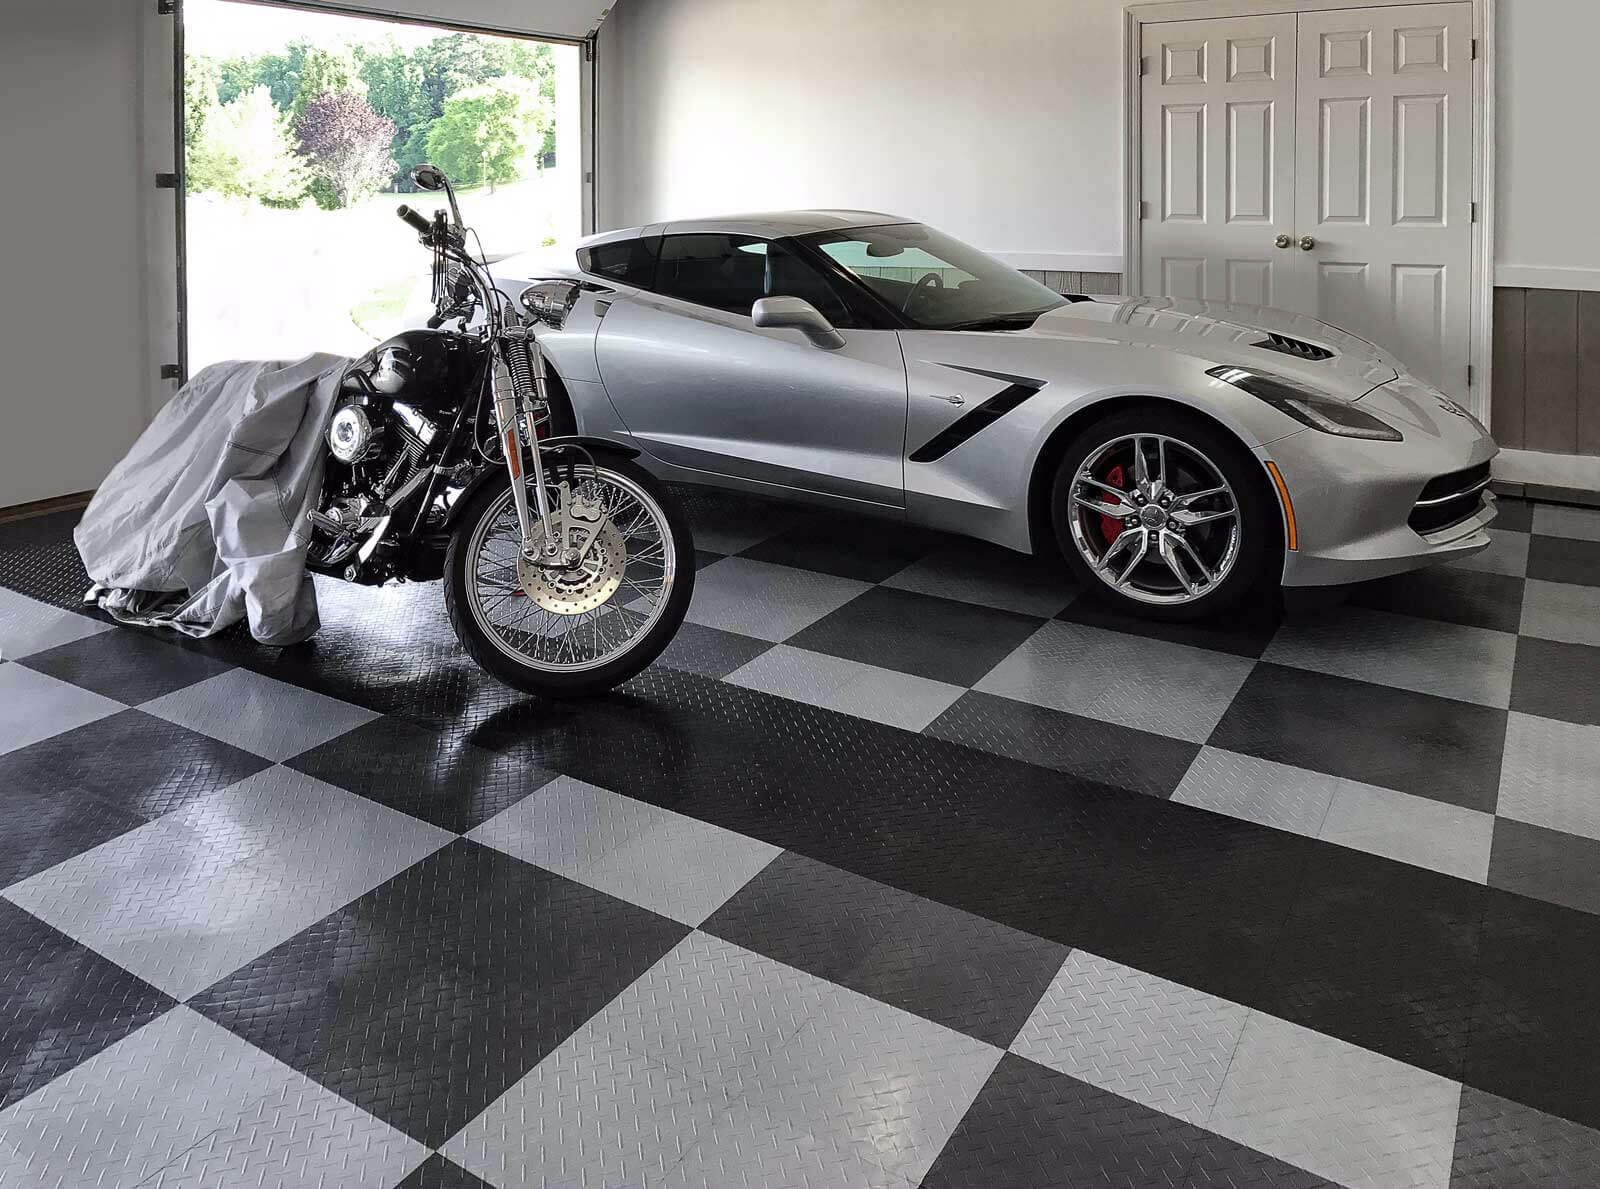 Corvette and motorcycle with Diamond flooring in alloy, graphite and black.